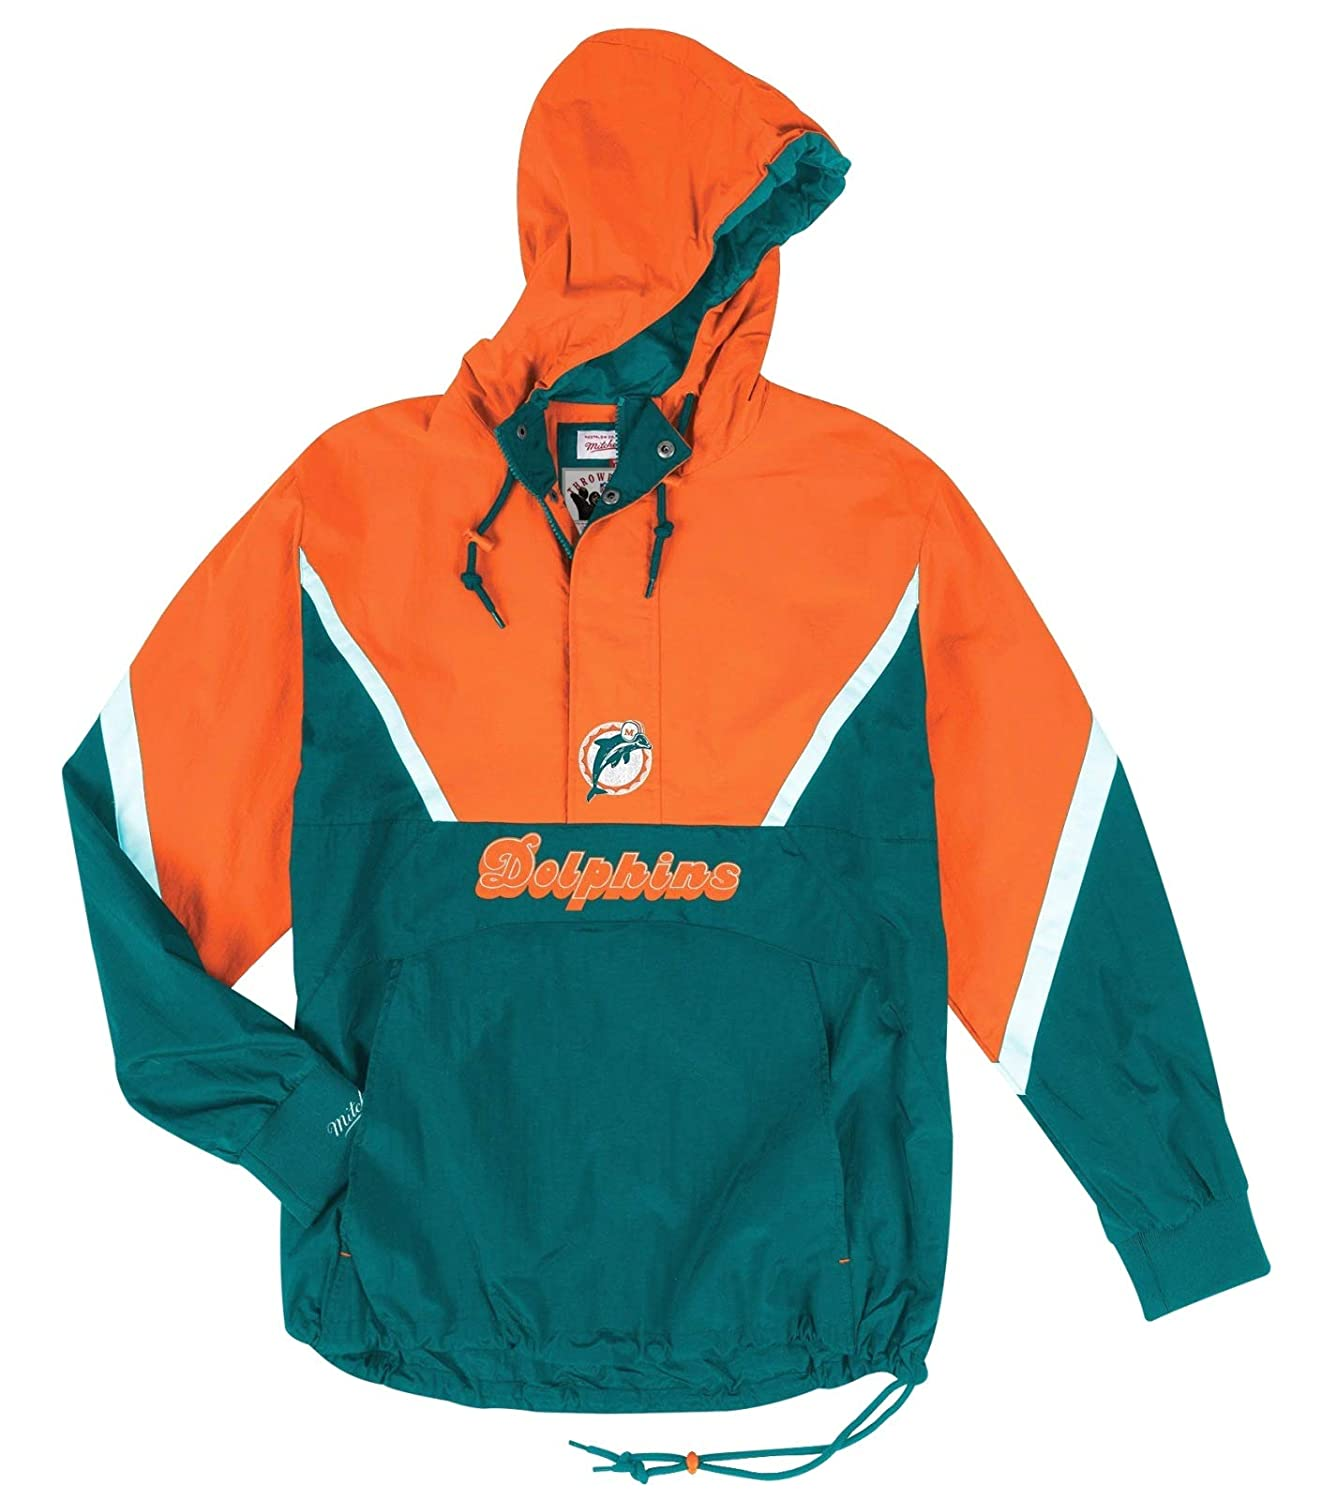 new product 8a543 053ba Amazon.com : Mitchell & Ness Miami Dolphins NFL Men's Anorak ...